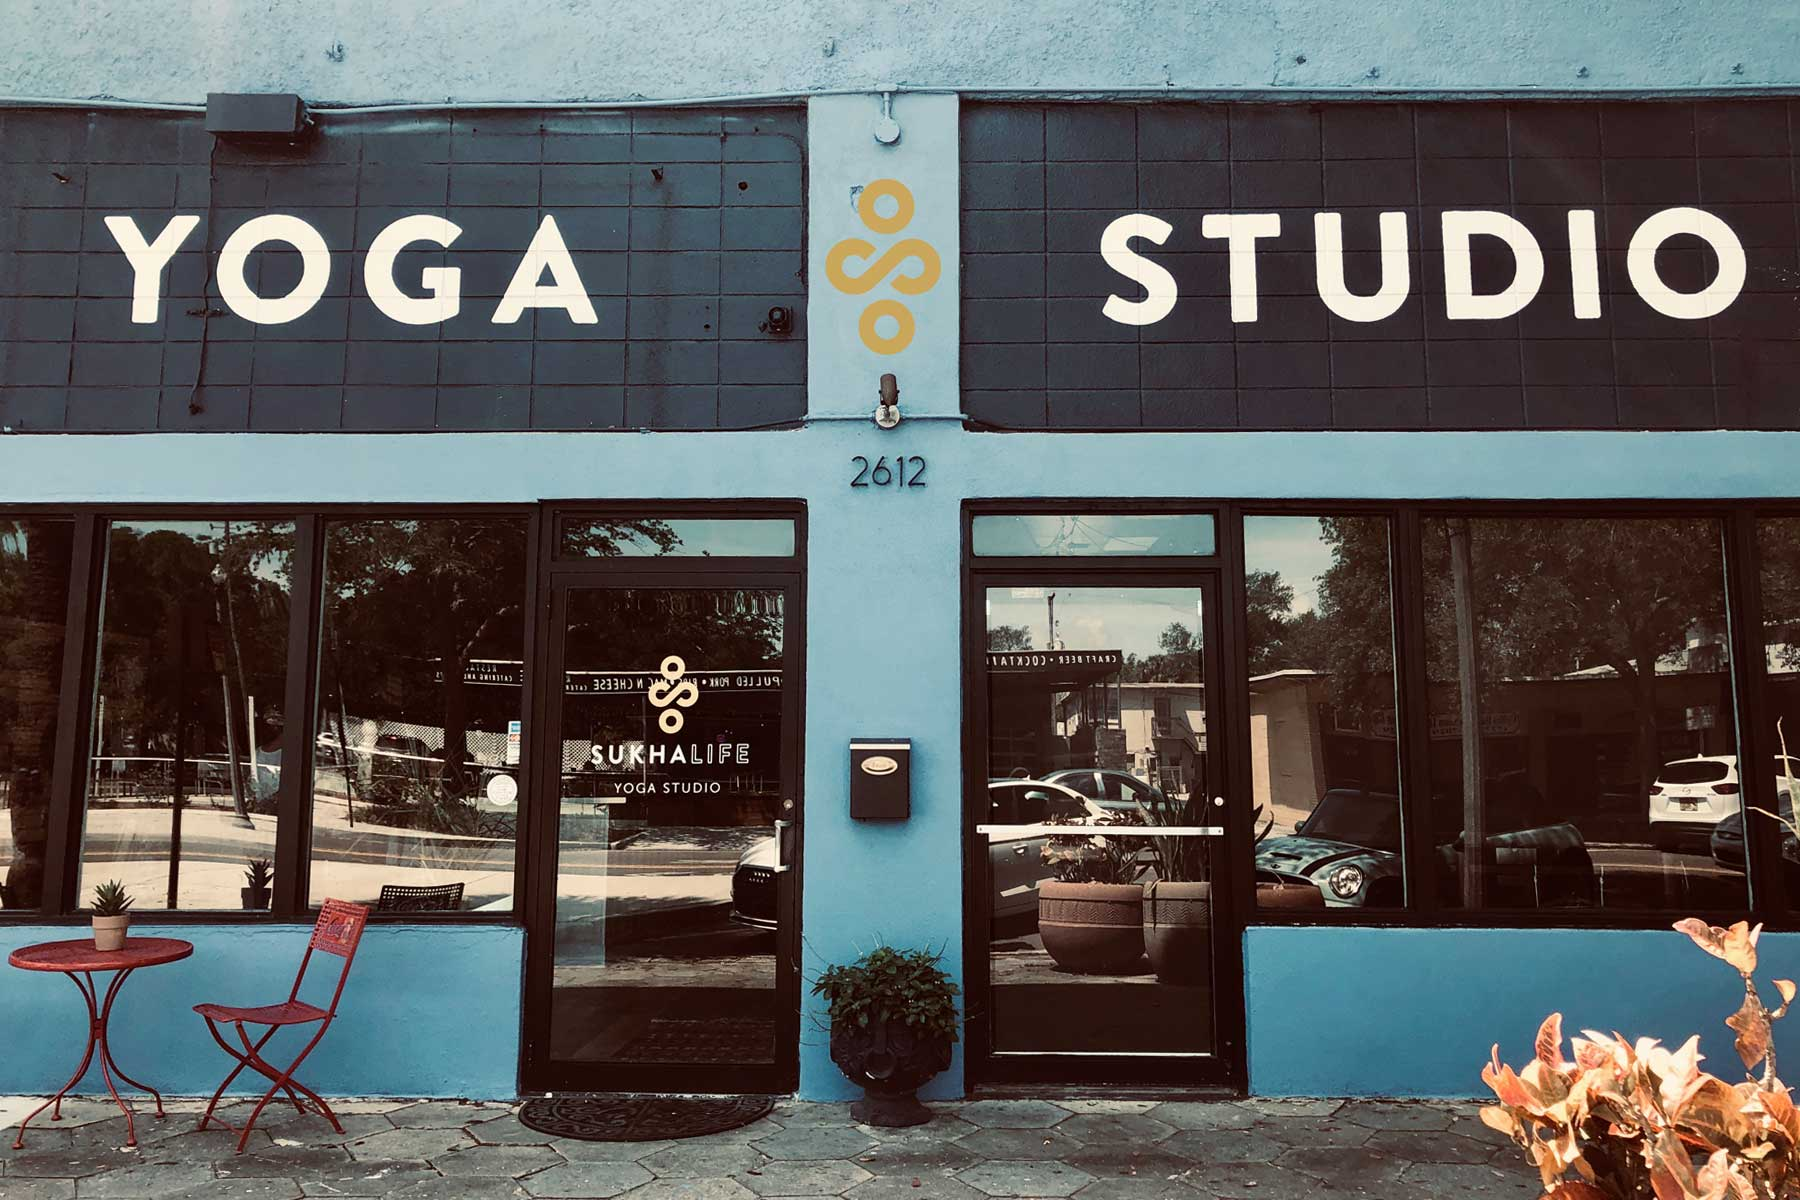 Yoga Studio Storefront on Central Avenue, St. Petersburg, FL